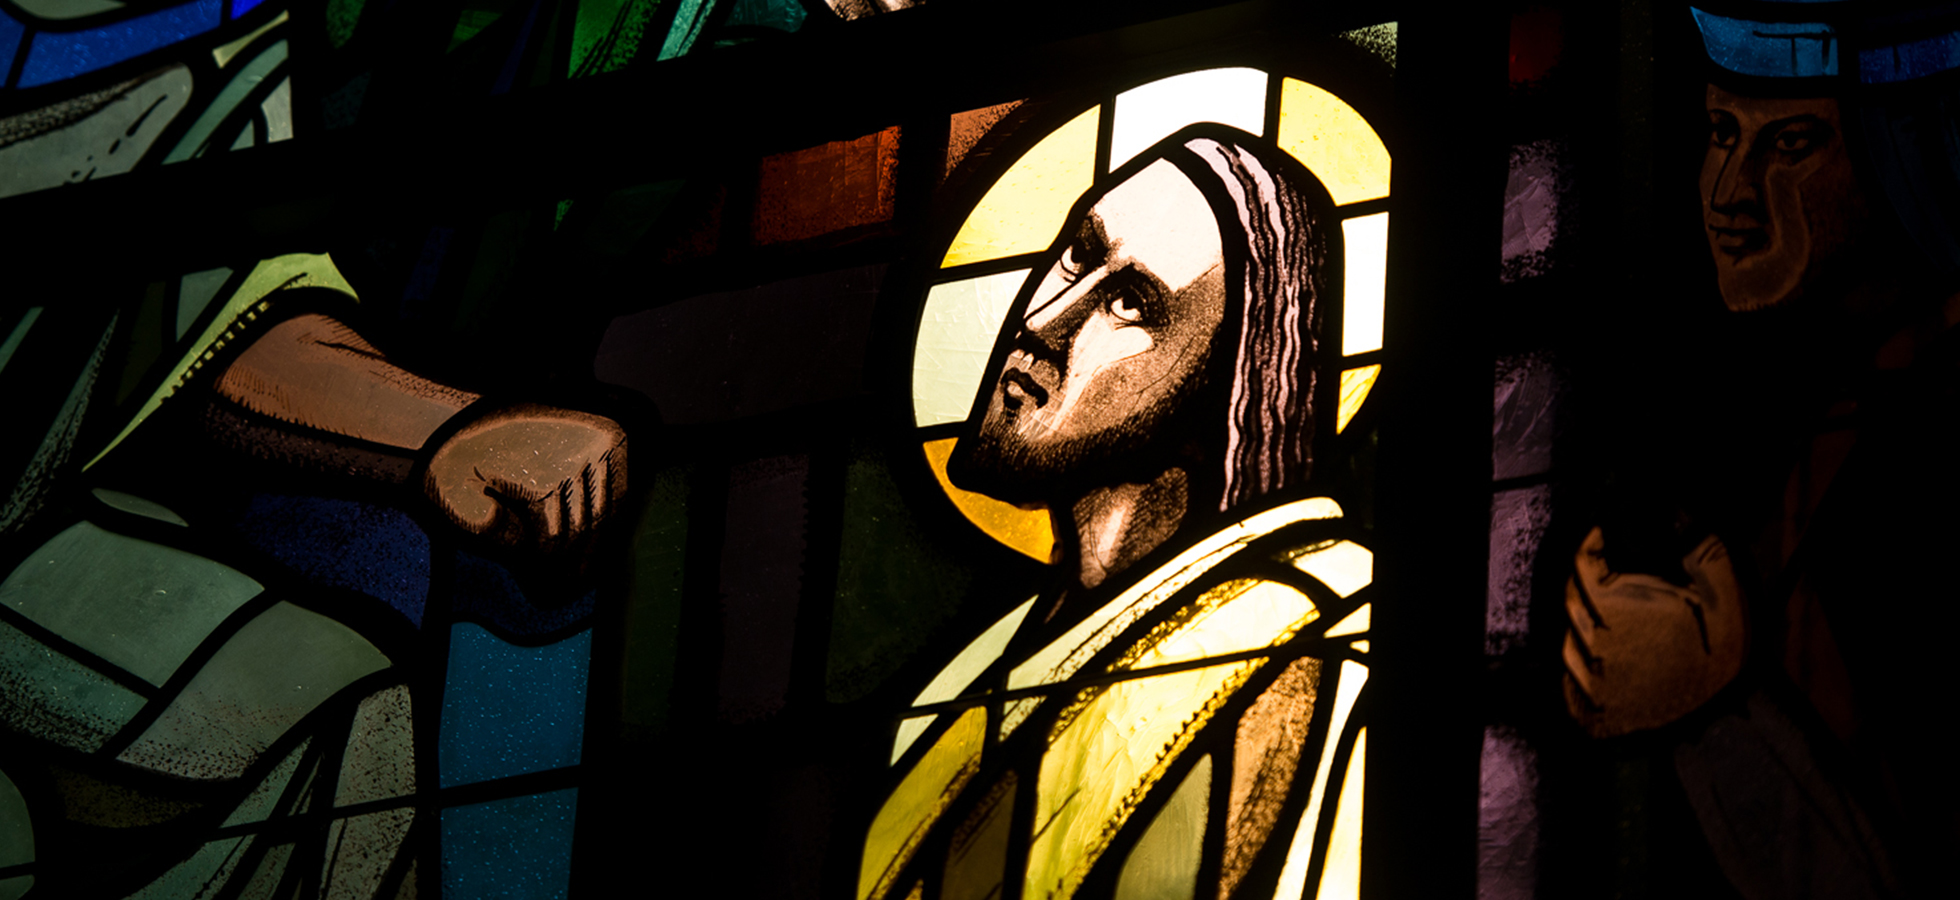 Stained glass window depicting Christ in the Chapel of the Holy Spirit at Assumption in Worcester.